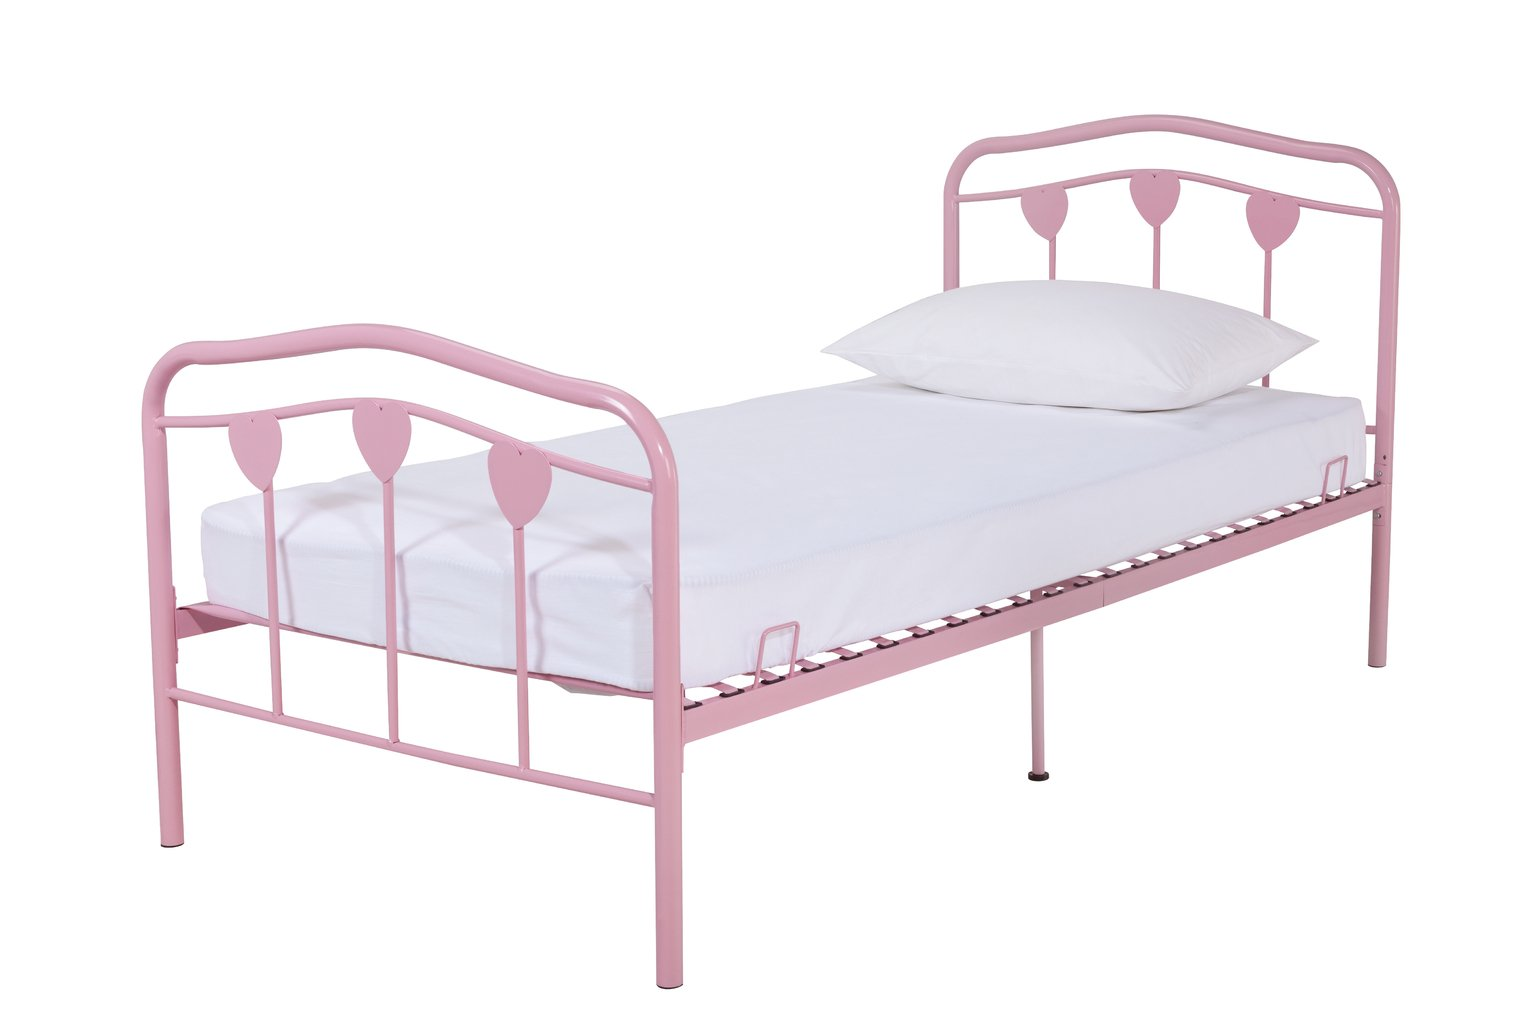 Ordinaire Buy Argos Home Hearts Pink Single Bed Frame | Kids Beds | Argos